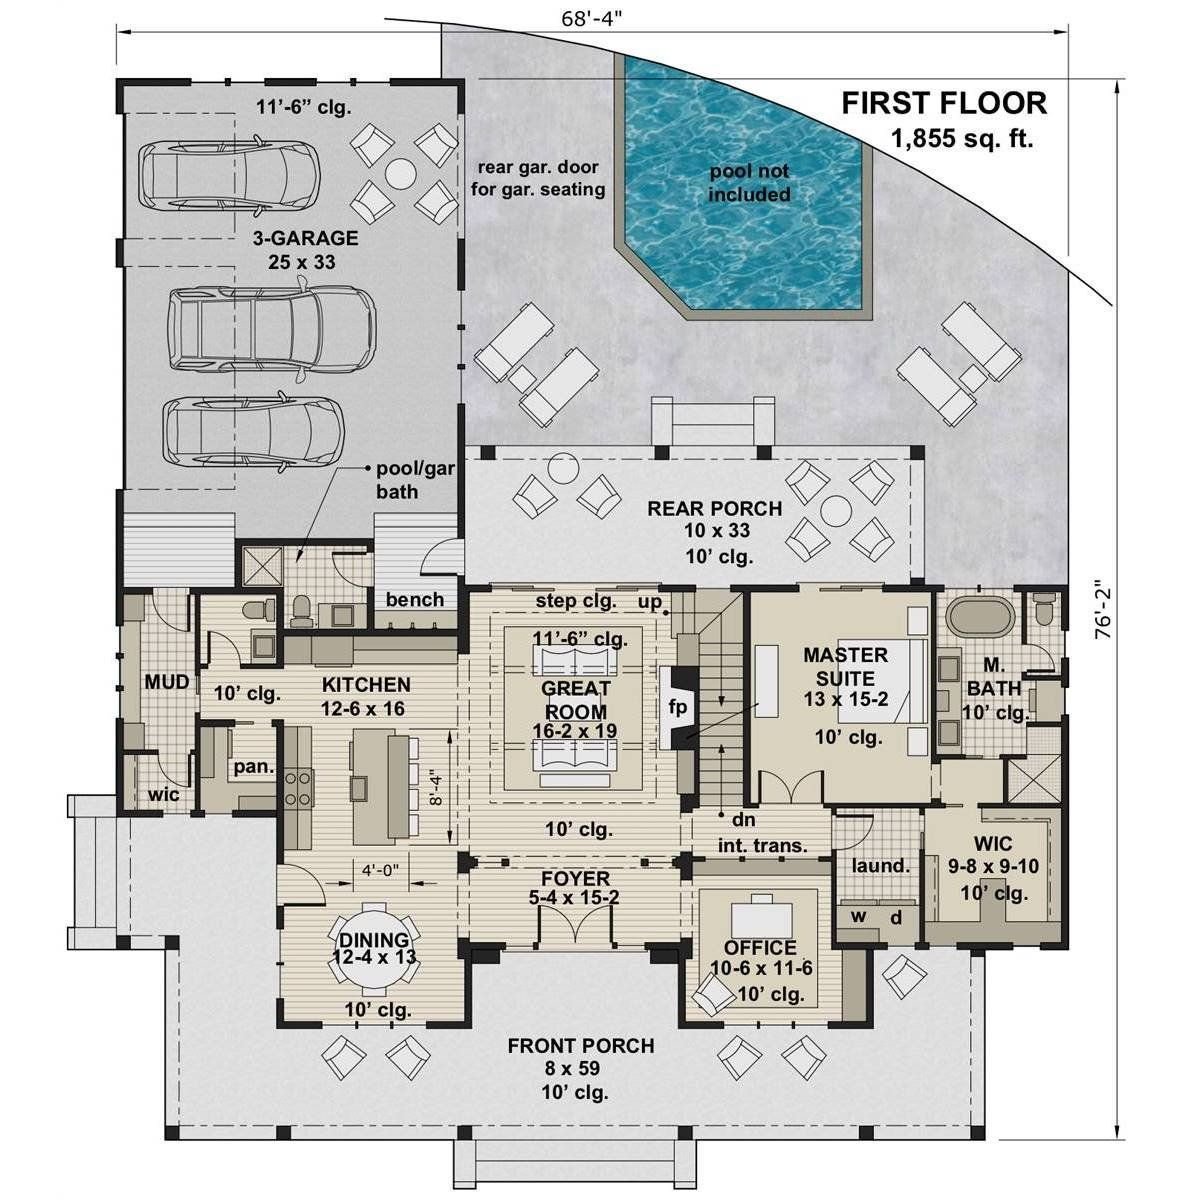 The House Designers Thd 7375 Builder Ready Blueprints To Build A Two Story Farmhouse Plan With Basement Foundation 5 Printed Sets Walmart Com Farmhouse Plans Modern Farmhouse Plans House Blueprints